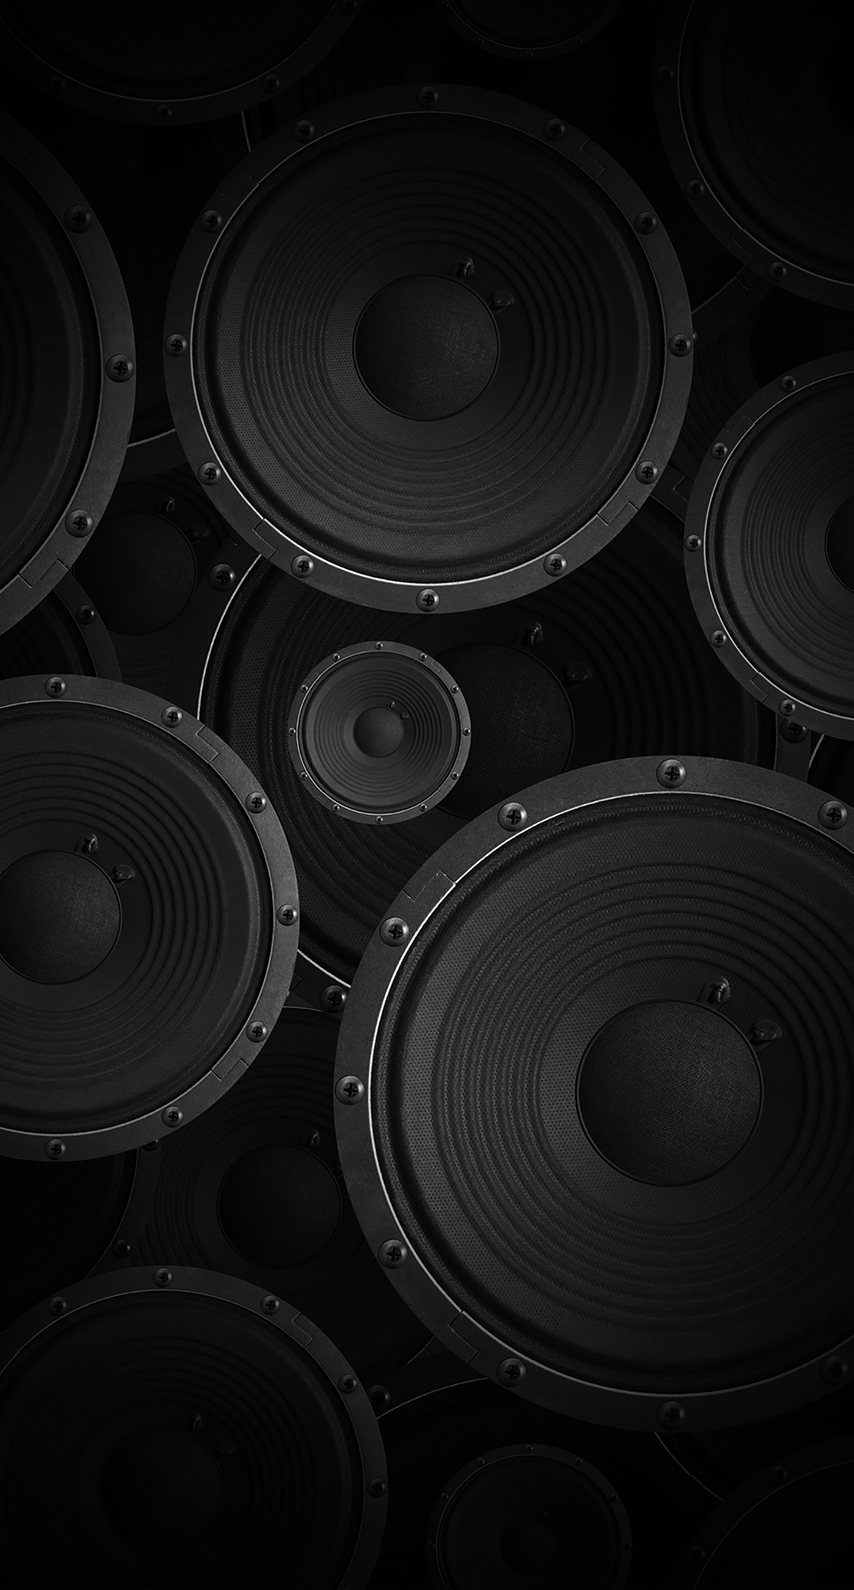 sound, bass, speaker, loud, industry, equipment, stereo, power, electronics, woofer, make noise